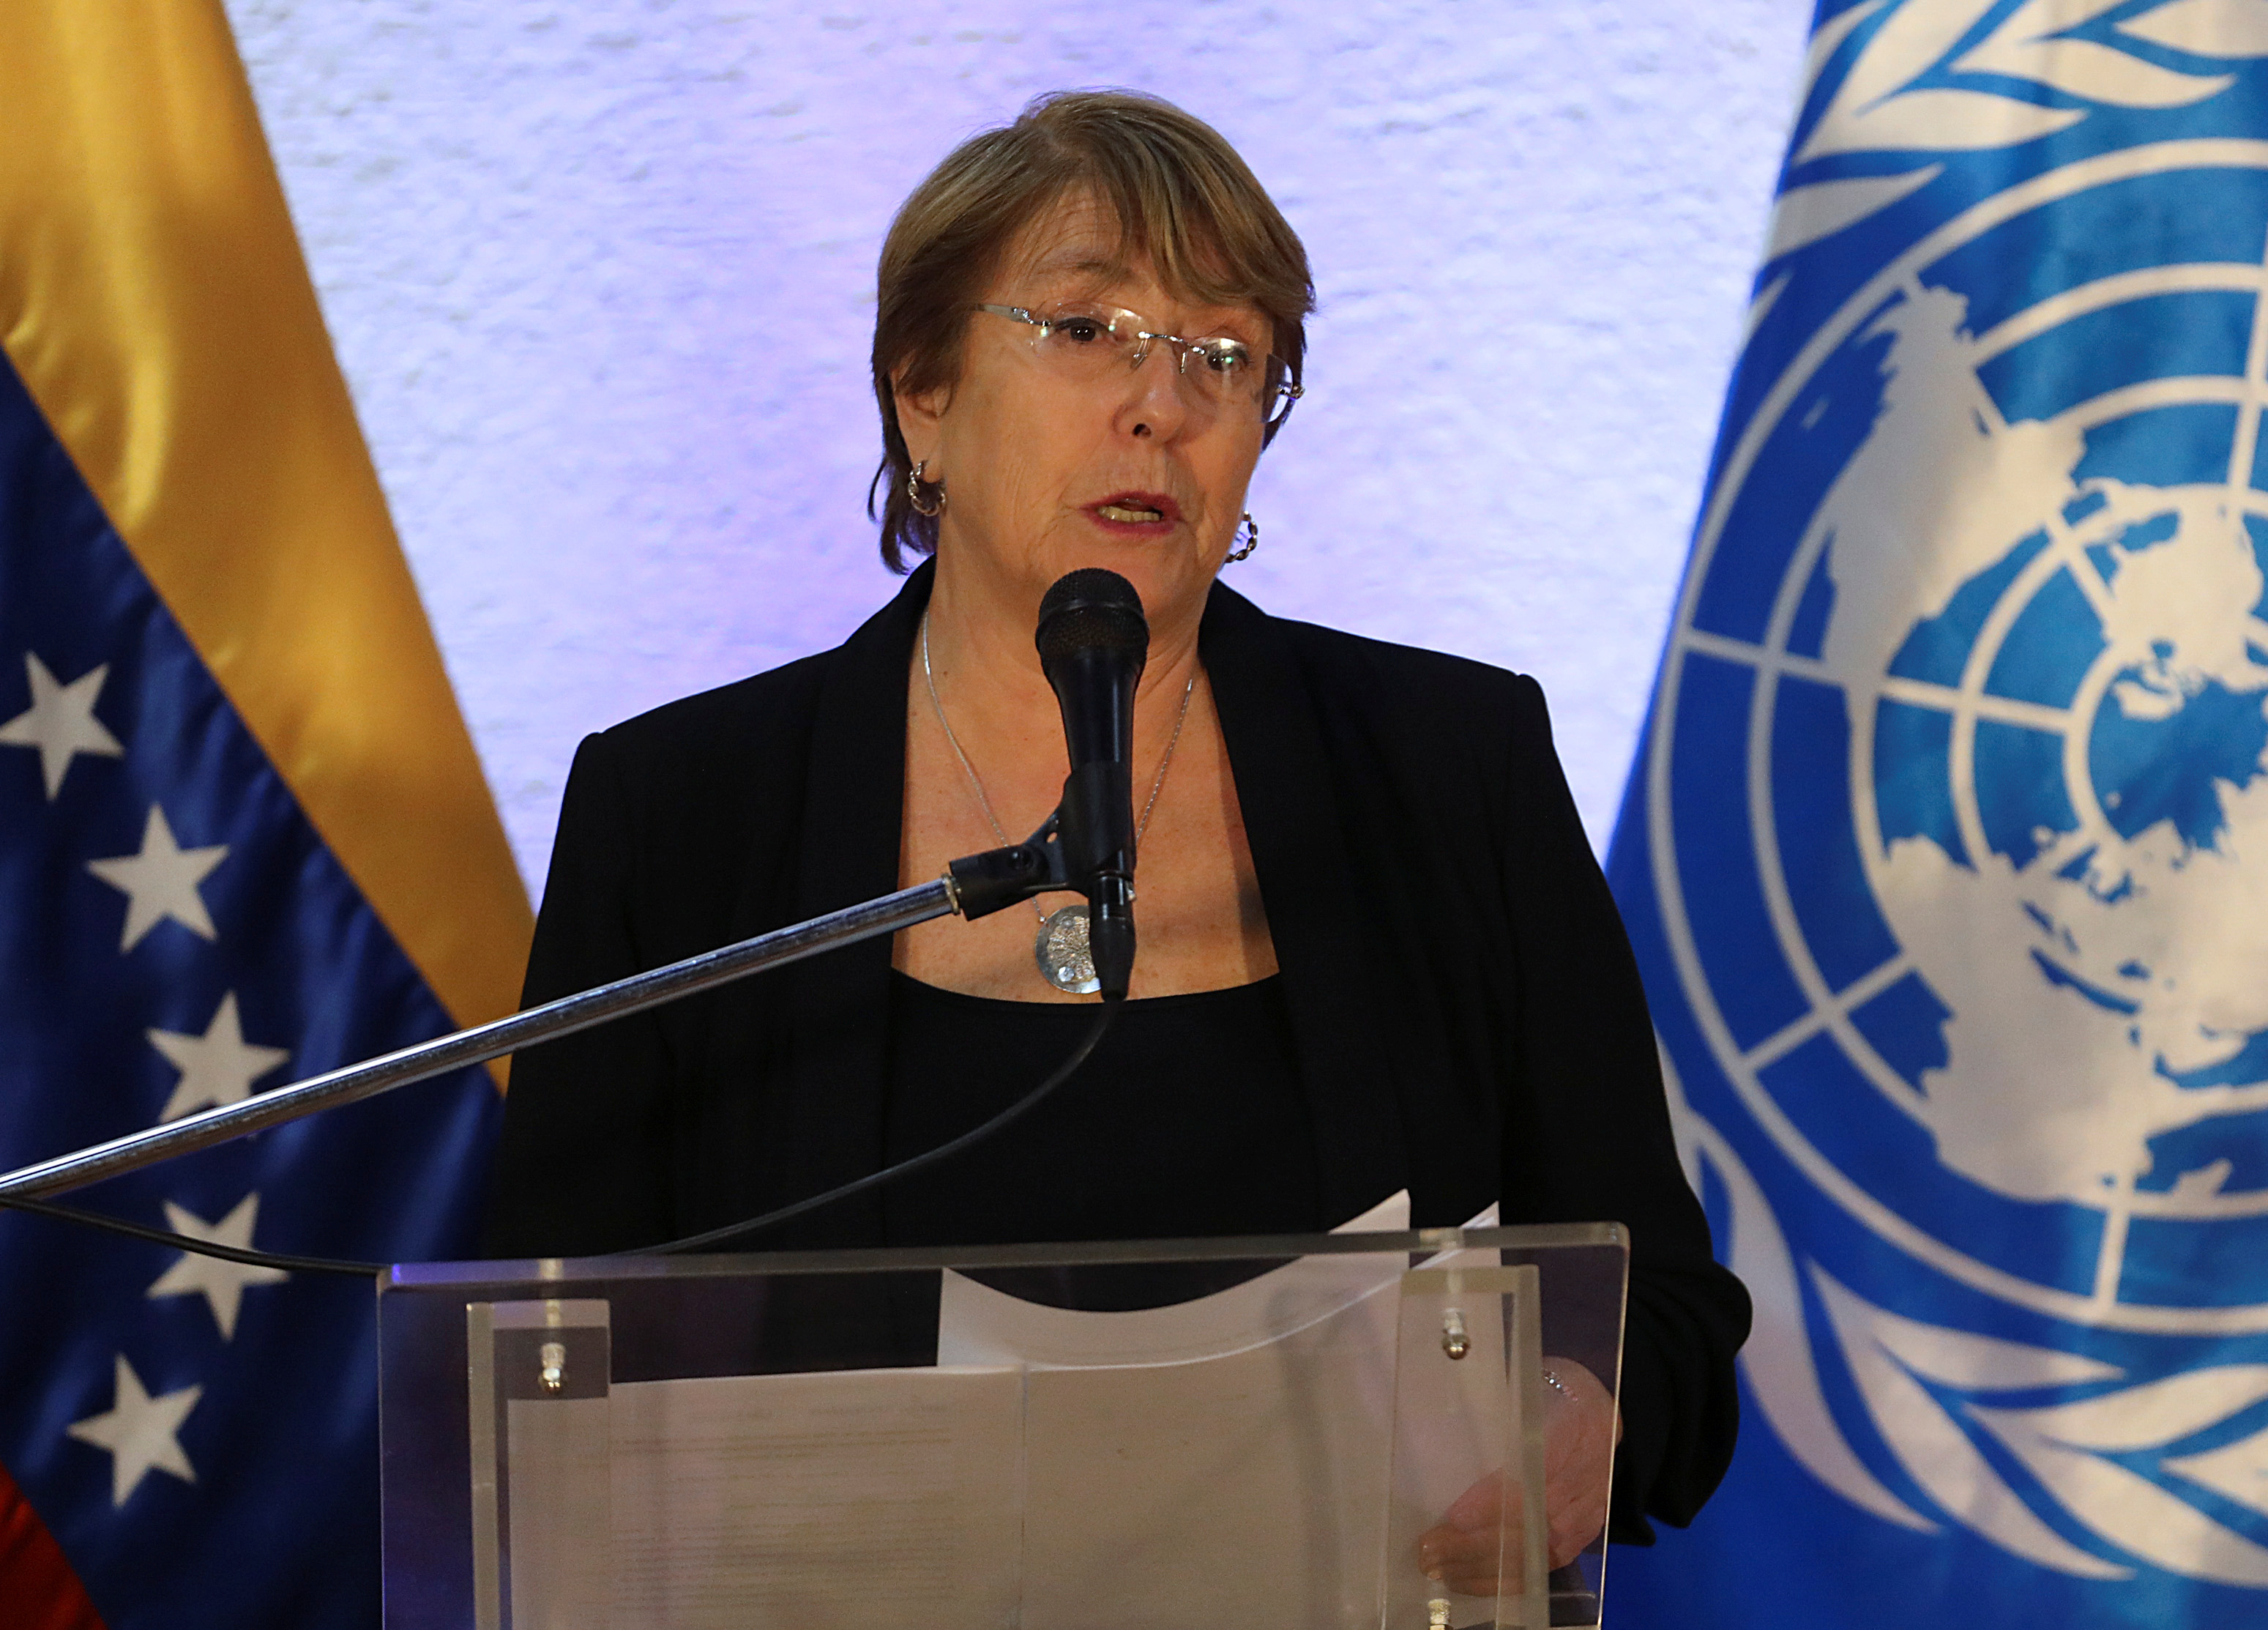 U.N. High Commissioner for Human Rights Michelle Bachelet speaks at a news conference after meeting with Venezuela's President Nicolas Maduro in Caracas, Venezuela, June 21, 2019. REUTERS/Fausto Torrealba